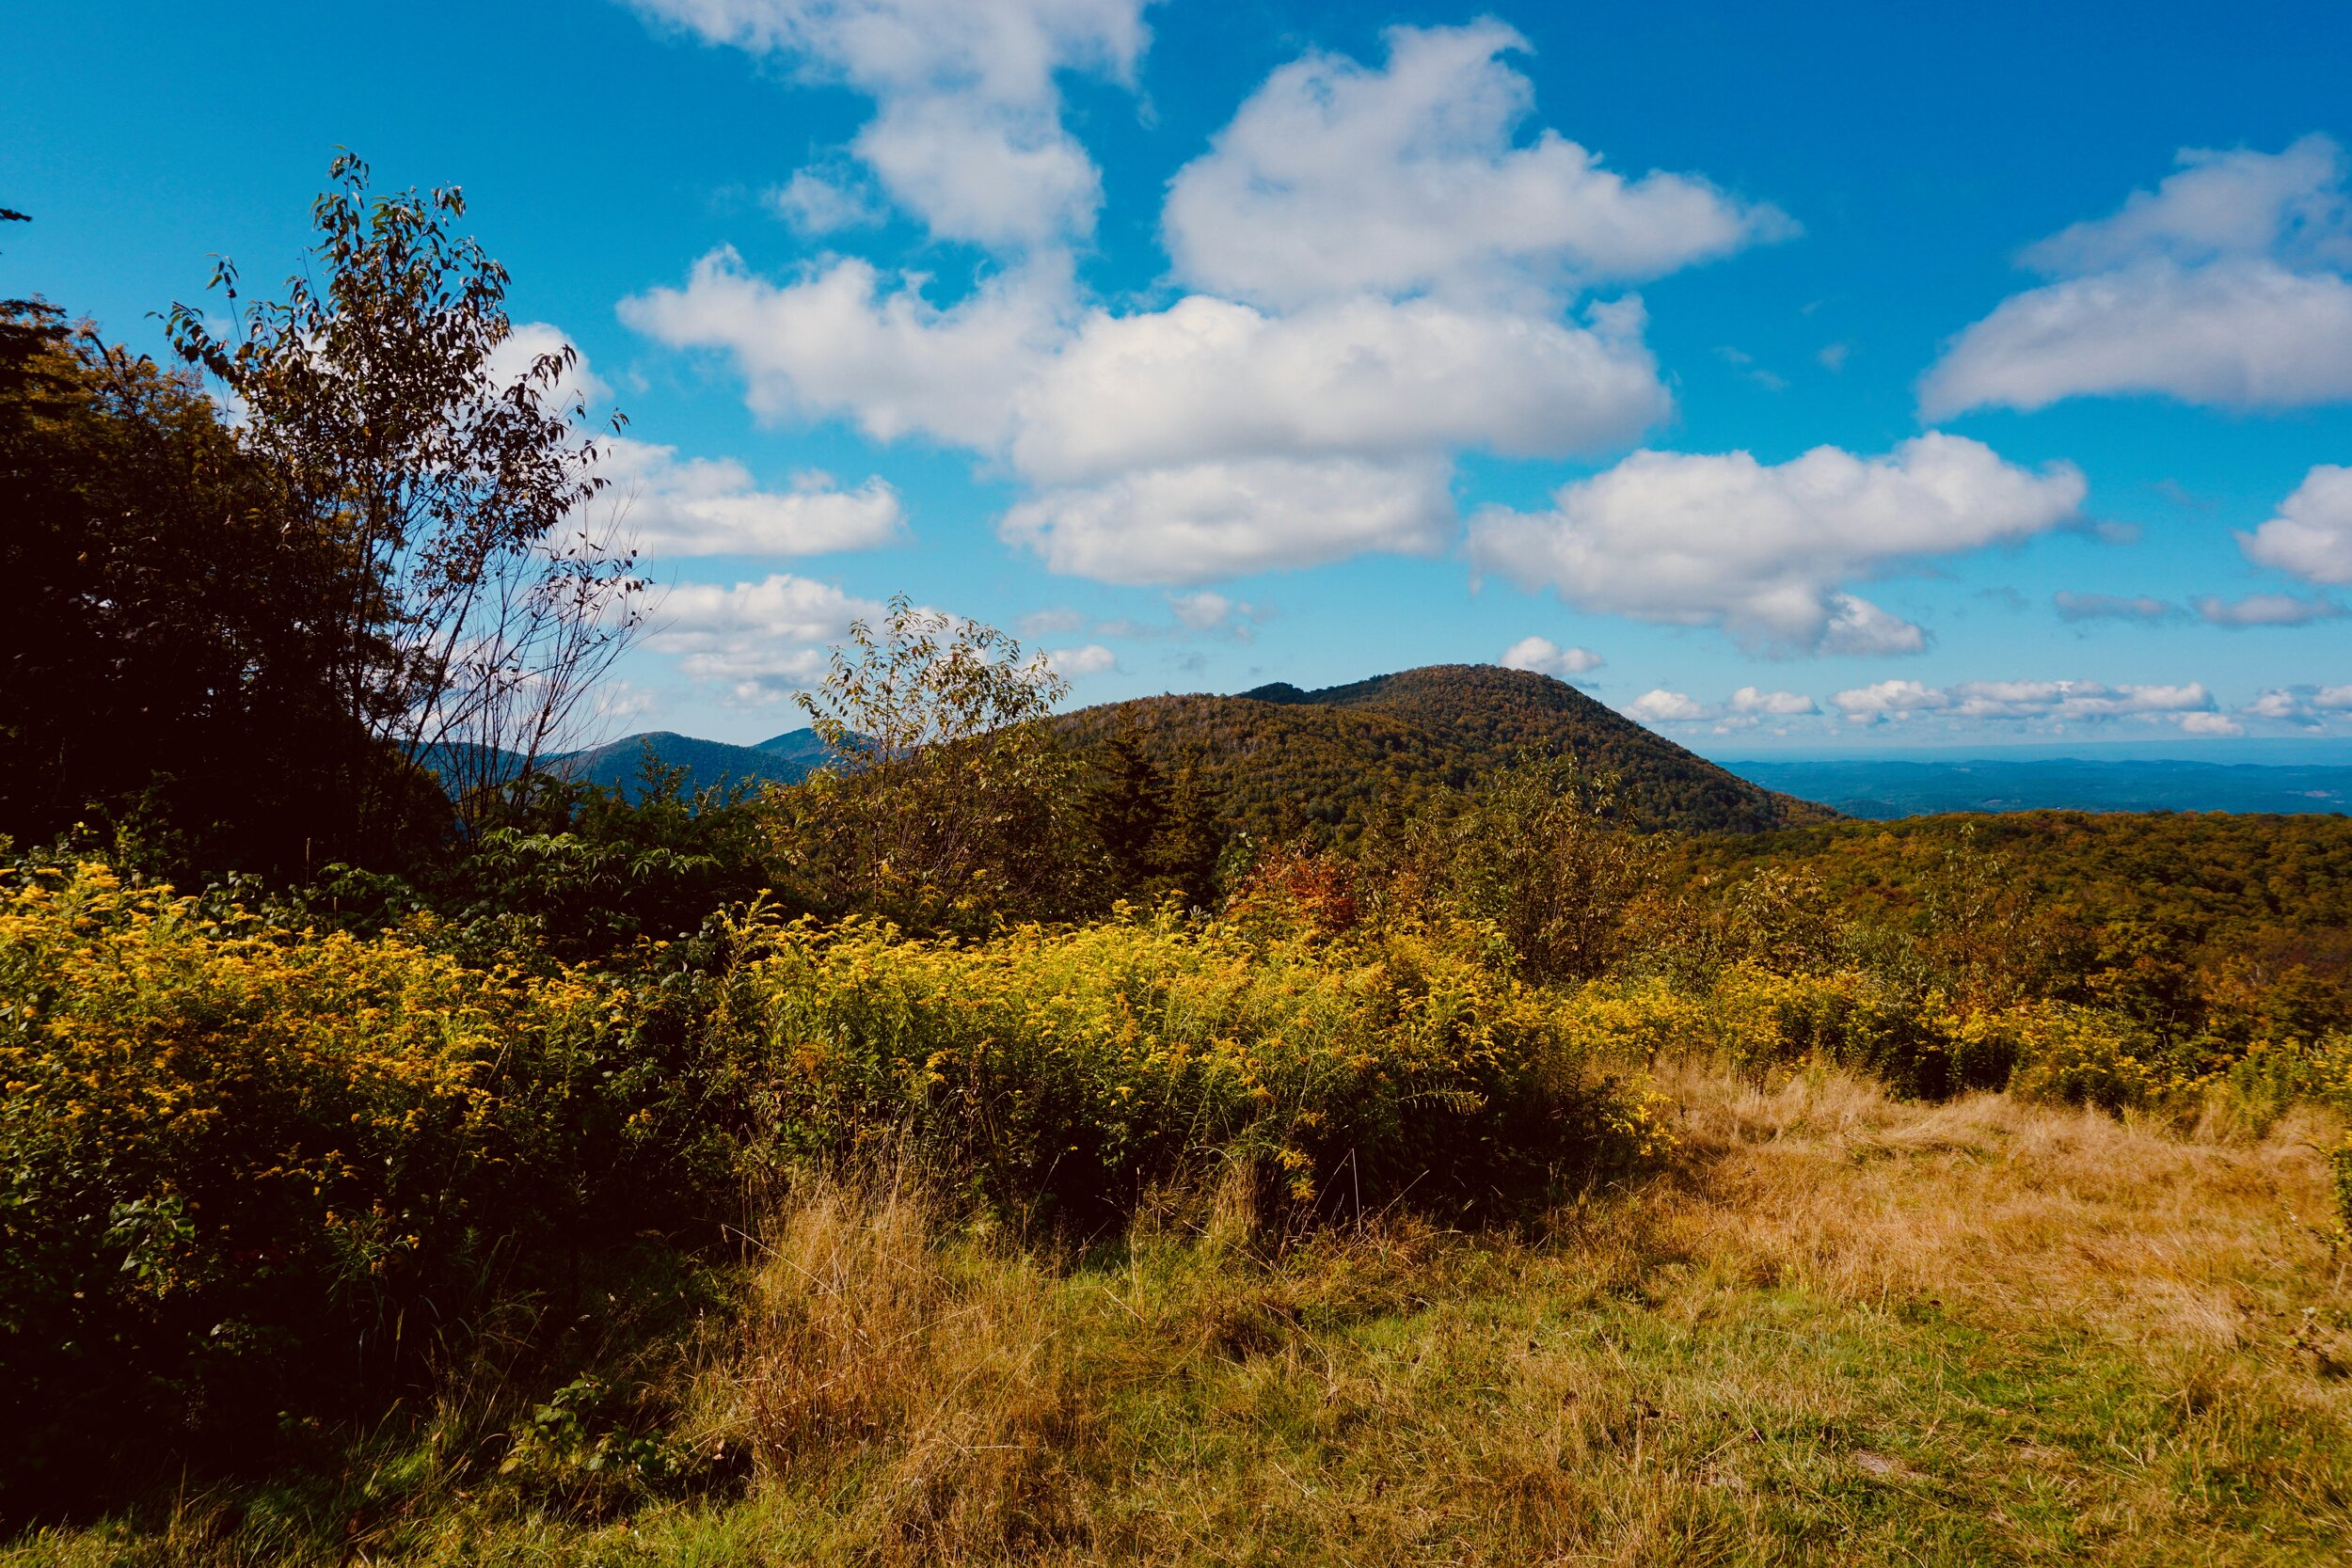 Photos by Sarah Krinsky at Viewpoint Cabin, Merck Forest and Farmland Center, Rupert VT